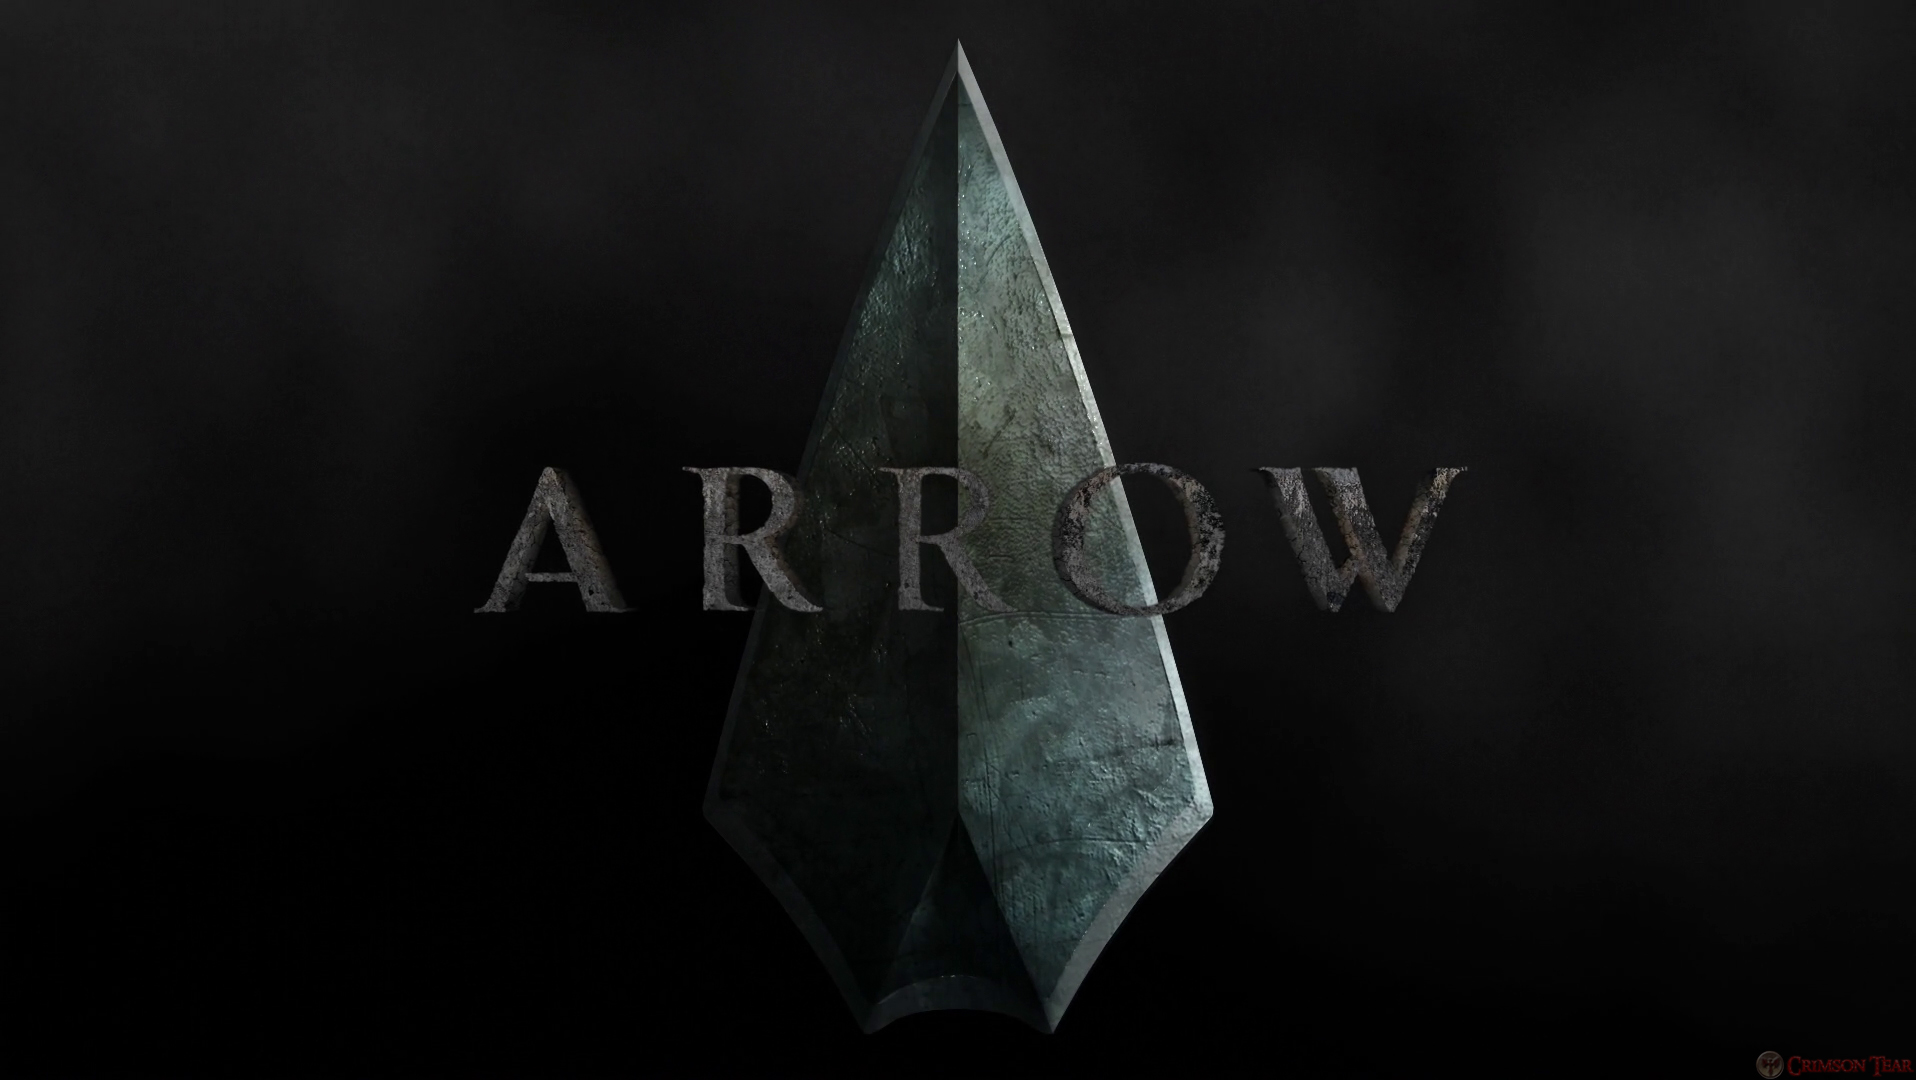 Arrow Tv Series 28 Hd Wallpaper   Trendy Wallpapers 1916x1080